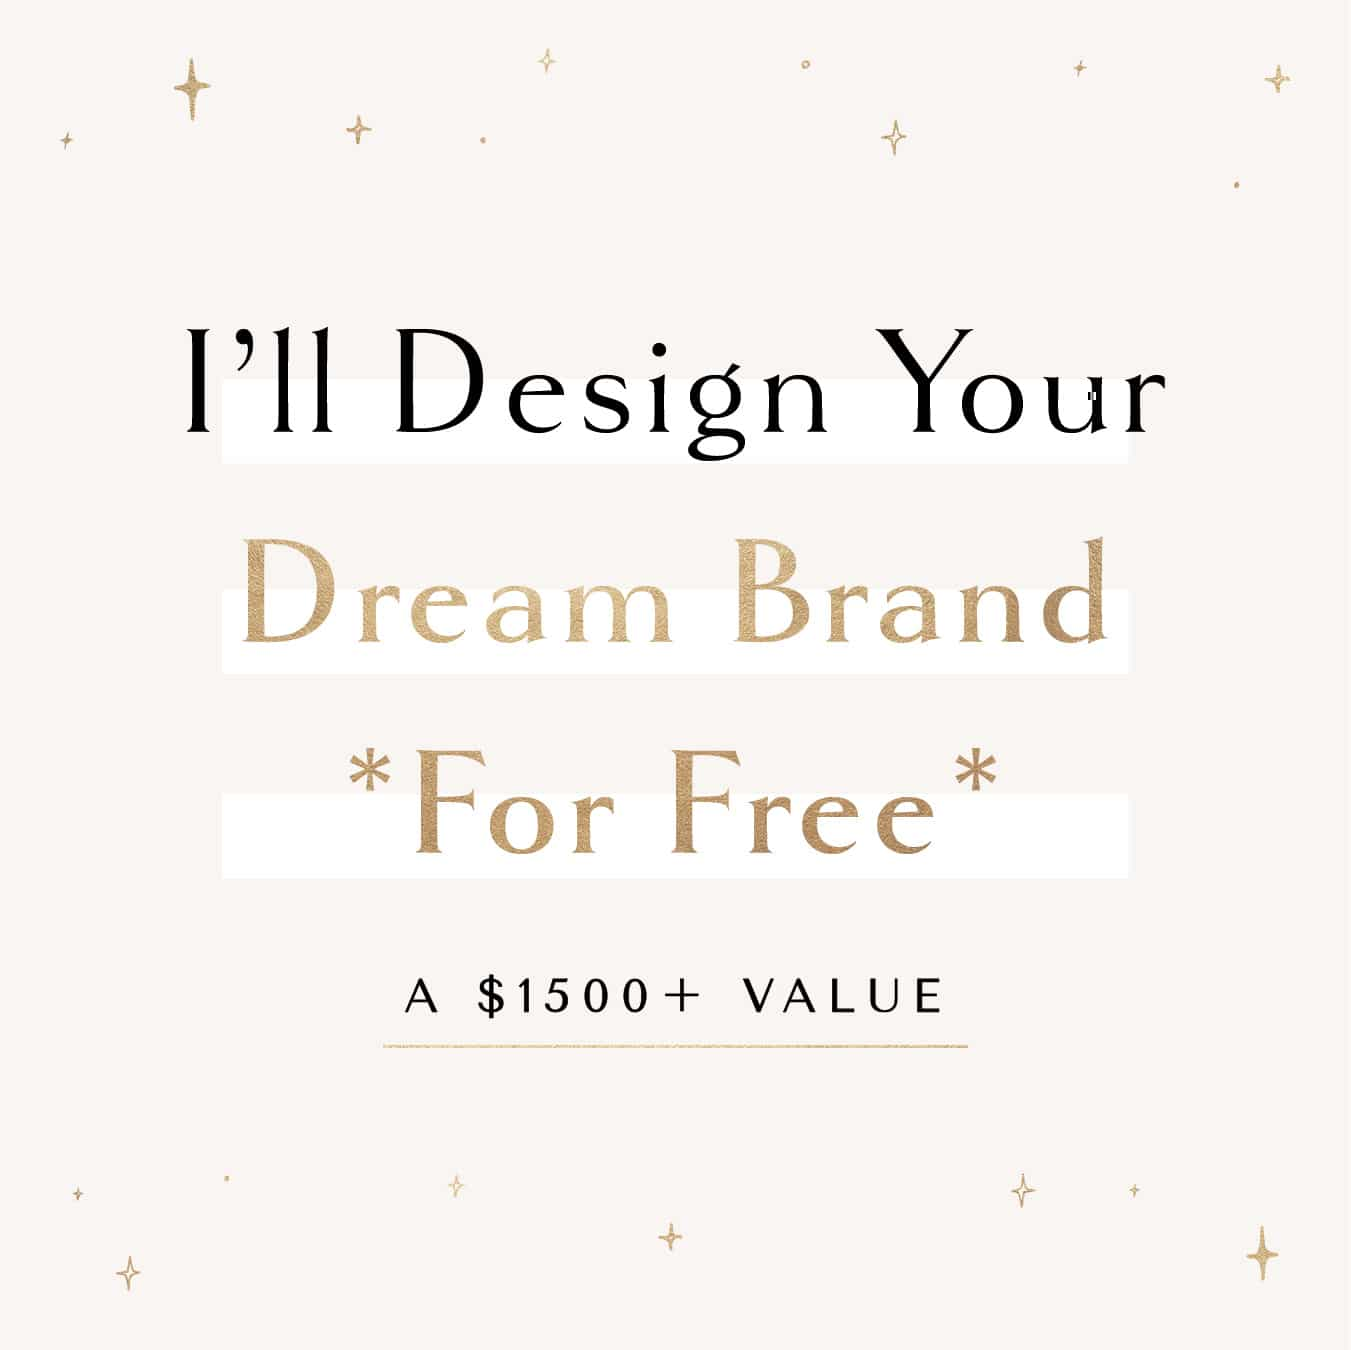 I'll Design Your Dream Brand for Free (a $1500+ value)